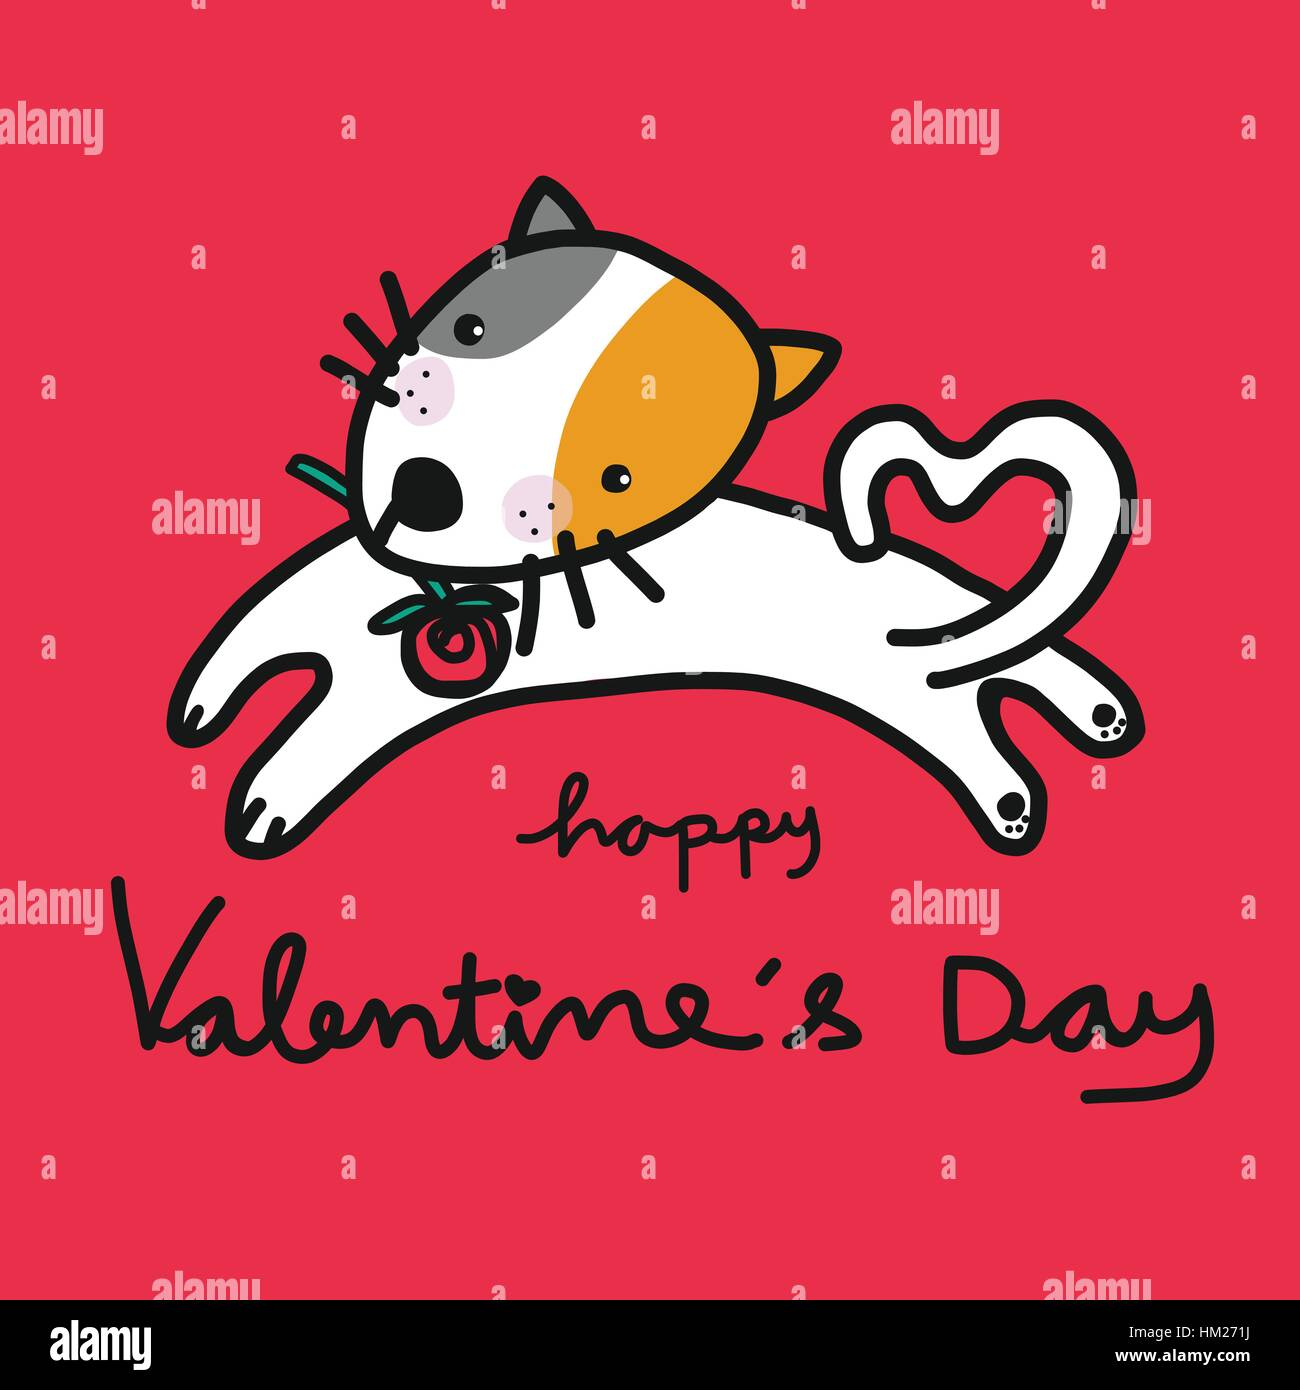 Cartoon Dog Valentines Day High Resolution Stock Photography And Images Alamy